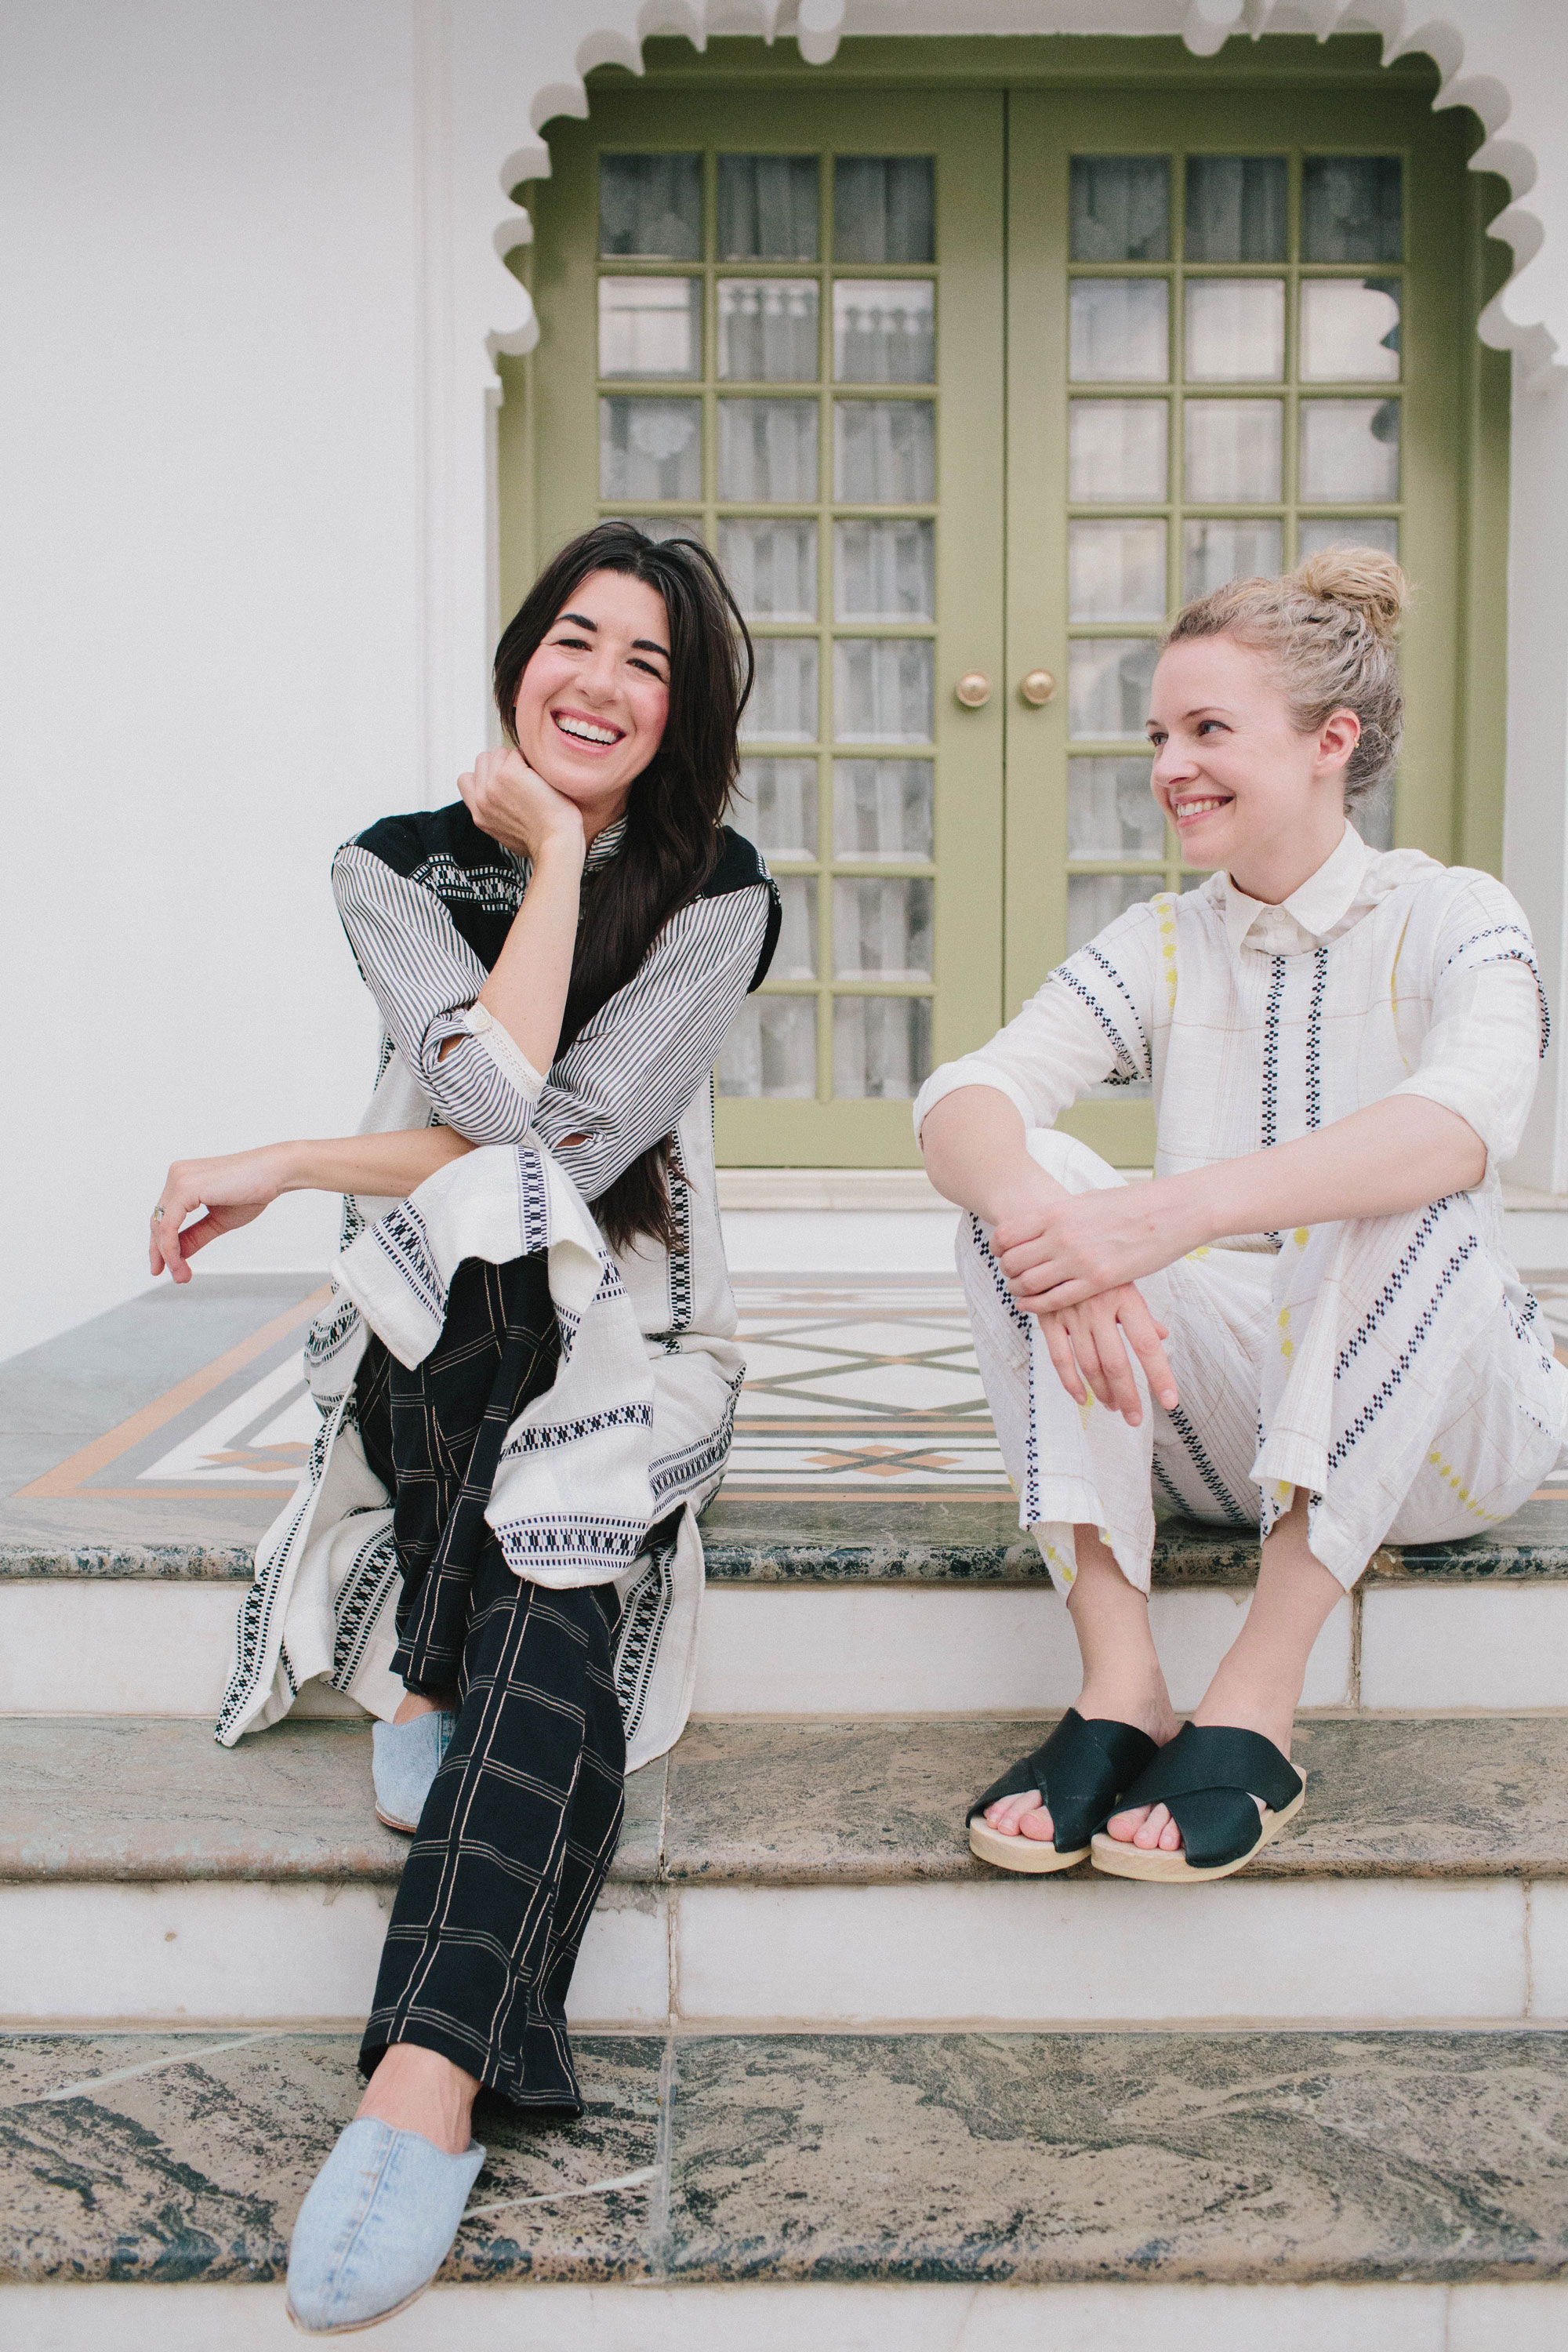 Cary Vaughan & Jenna Wilson  Co-founders, Ace & Jig  Cary and Jenna pair exclusive artisanal textile stories with effortless silhouettes to reinvent the notion of cool, season-less fashion inspired by a shared passion: antique fabrics and colored stripes of heritage cloth. Each fabric in the collection is custom designed with a keen eye on color, motif, and texture, then yarn-dyed and woven on looms in India, where they travel yearly to work with textile experts and artisans to perfect their designs. ace&jig has generated a cult following and can be found at select retailers globally including Liberty of London, Beams Japan, Barneys, ABC Home and Oroboro.  Web:  aceandjig.com  Instagram:  @aceandjig